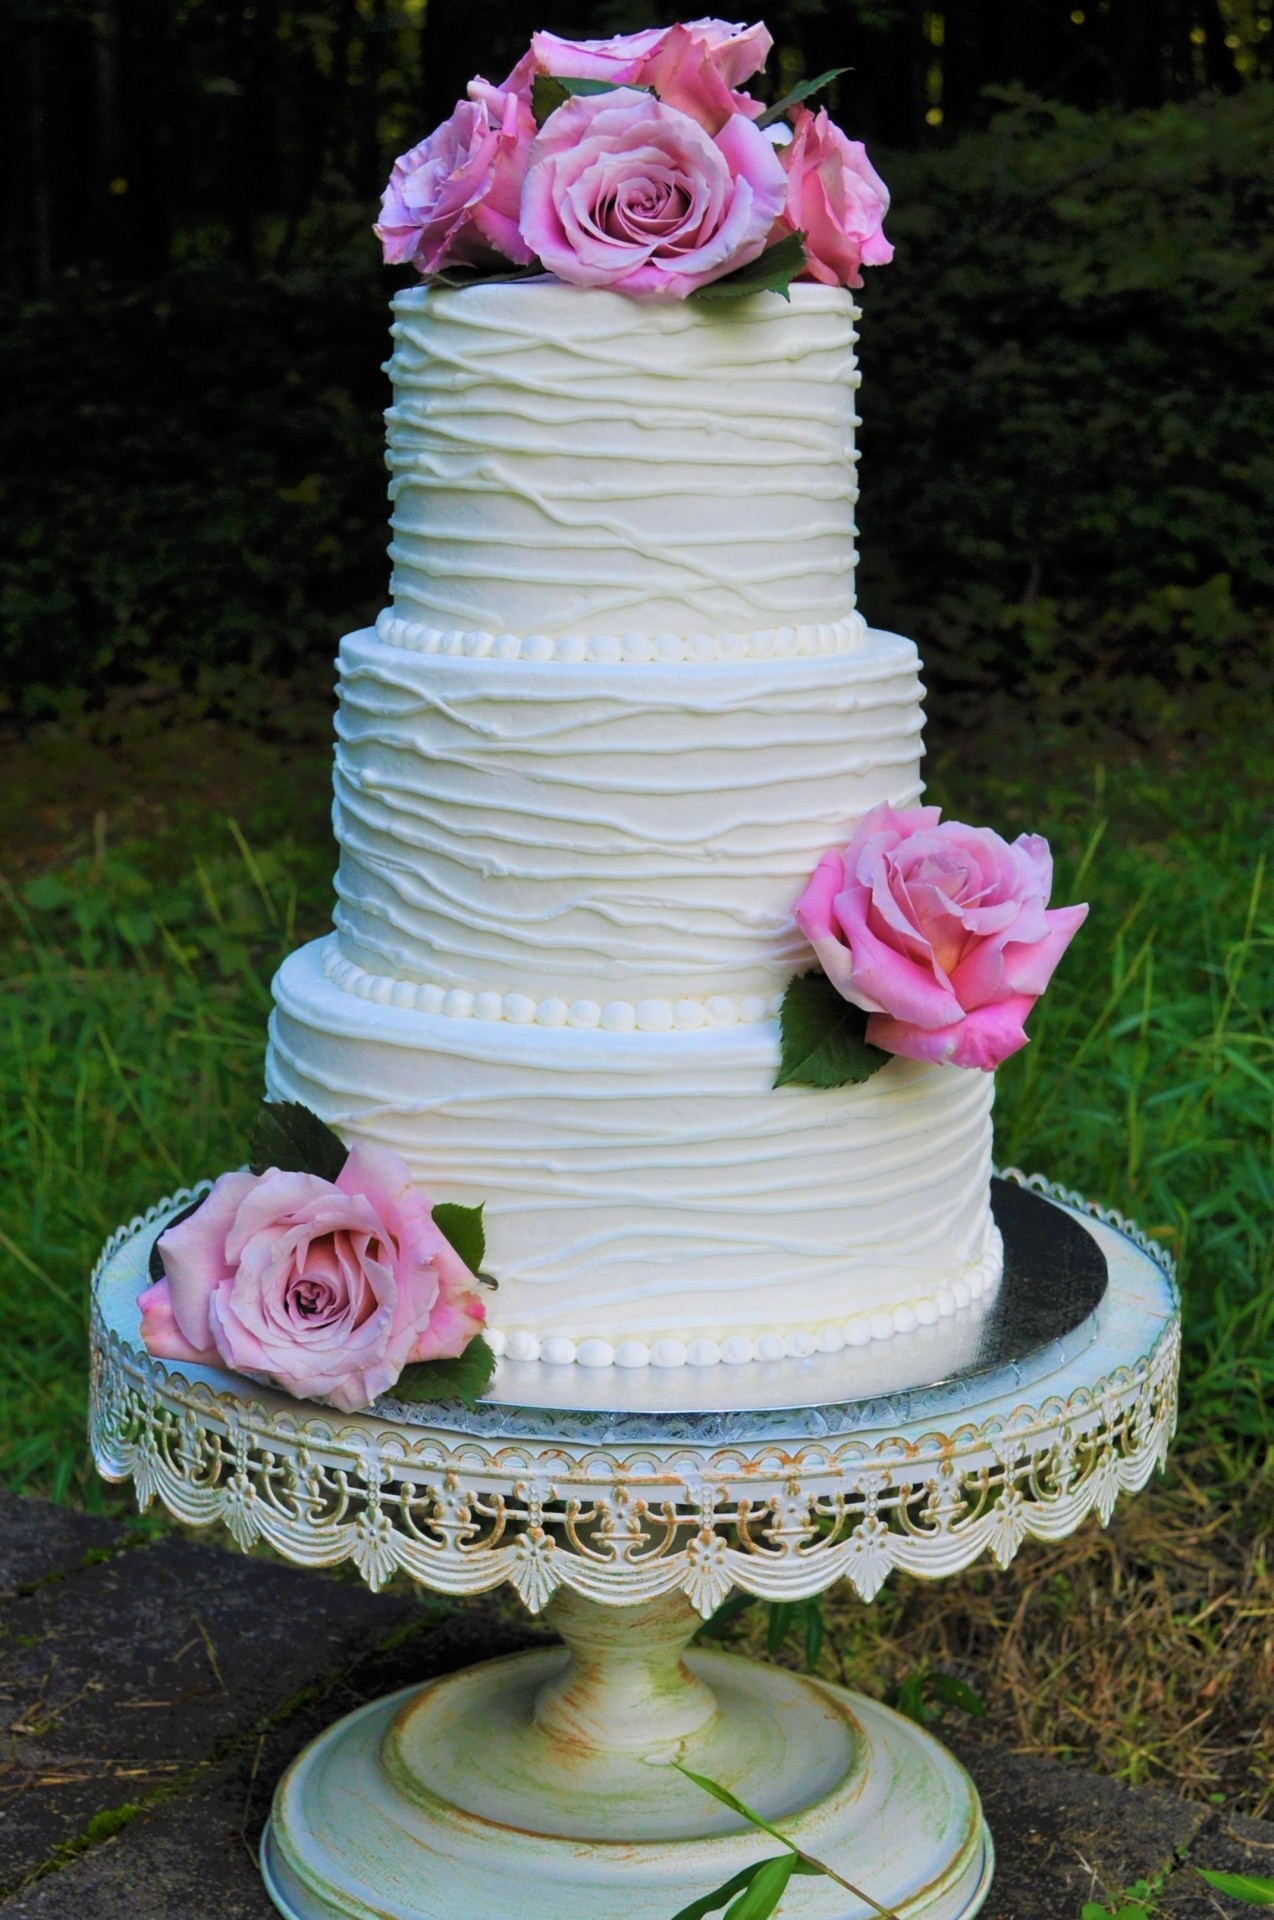 Rustic with piped lines and fresh flowers